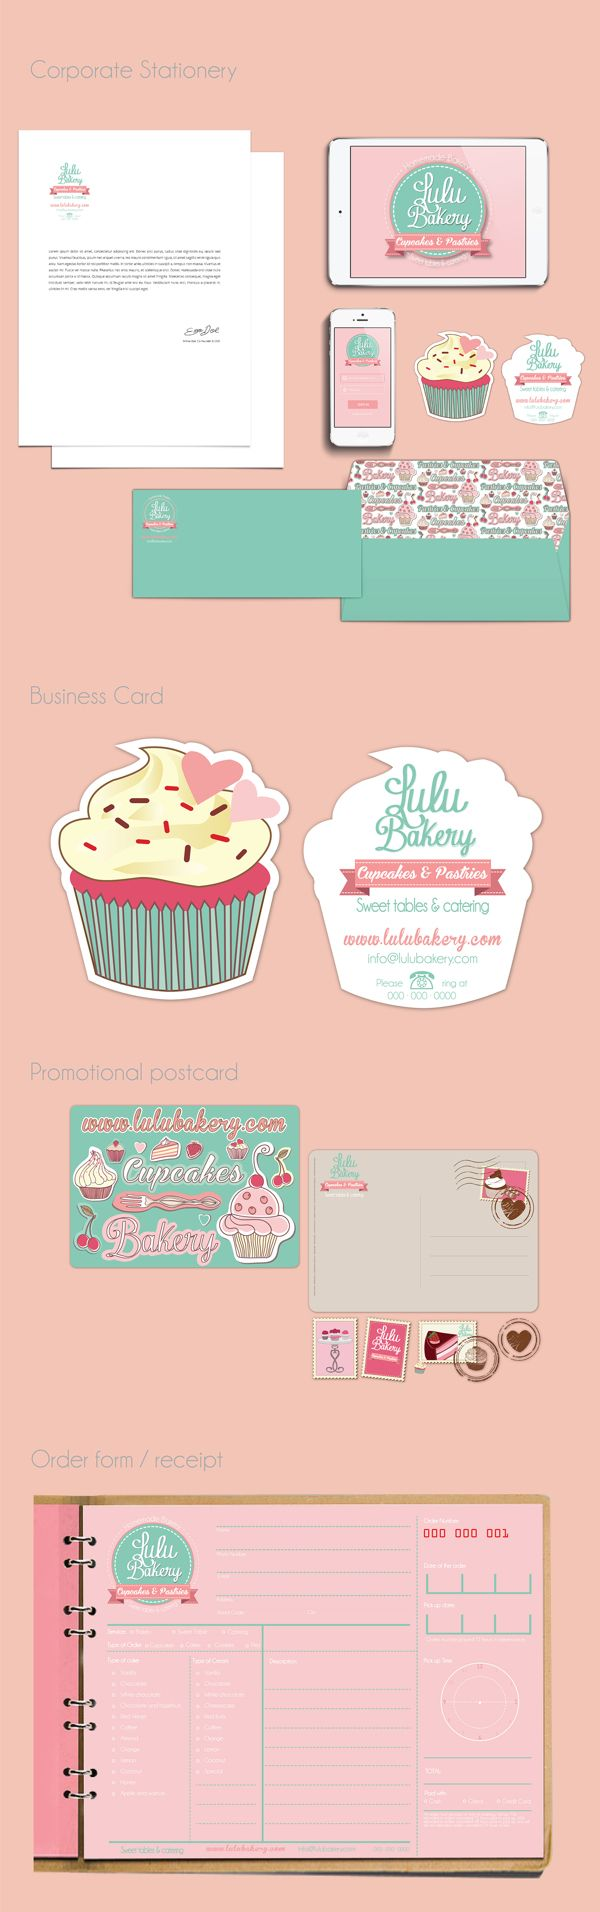 Lulu Bakery - Branding by Luciana Cruz, via Behance